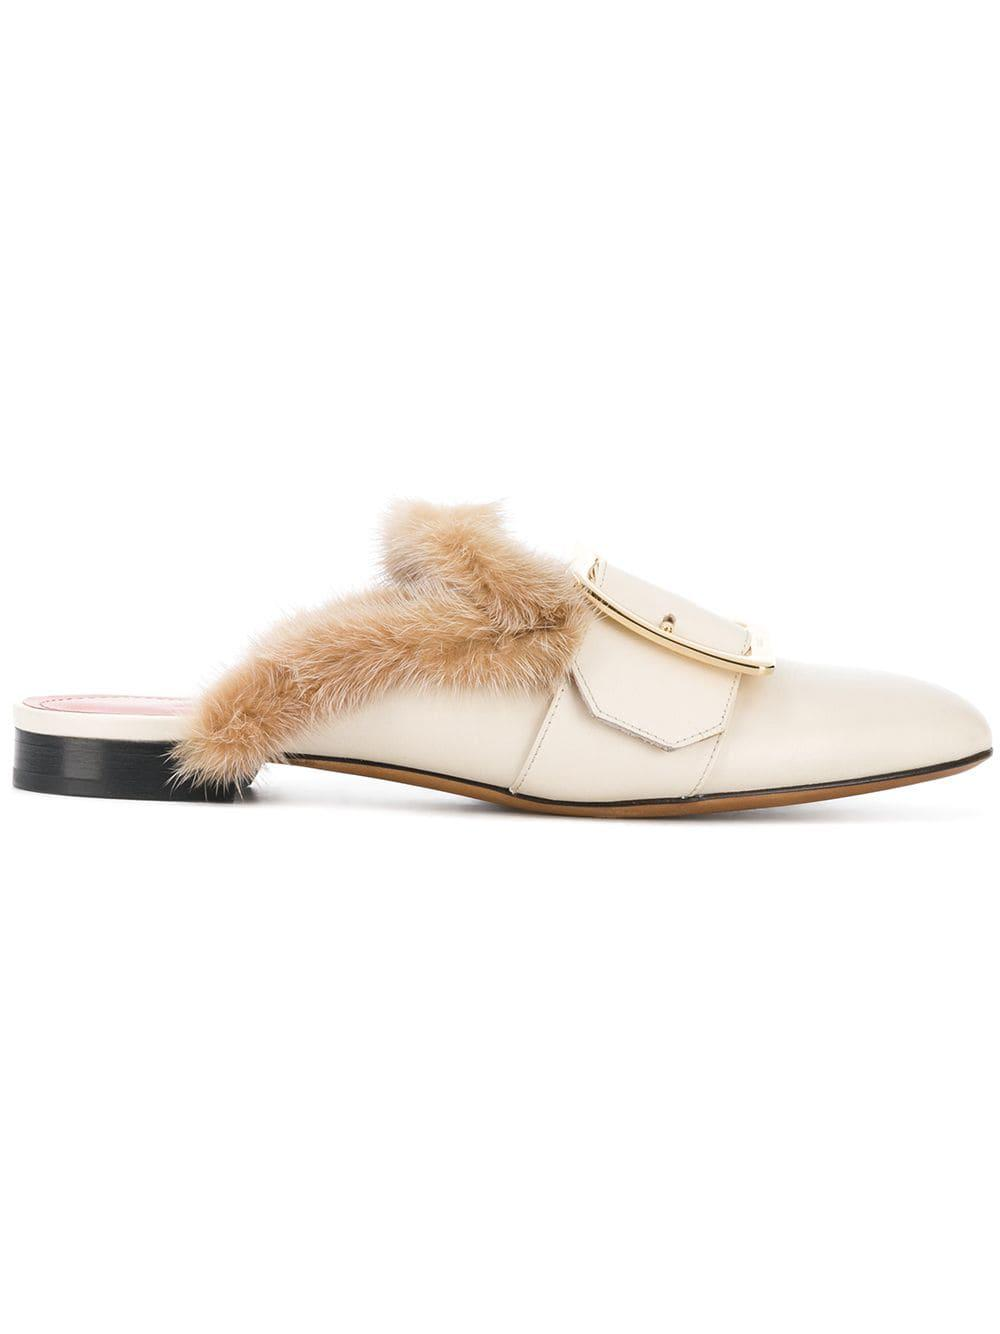 e88e2bf505dd7 Lyst - Bally Janesse Fur Trimmed Slippers in Natural